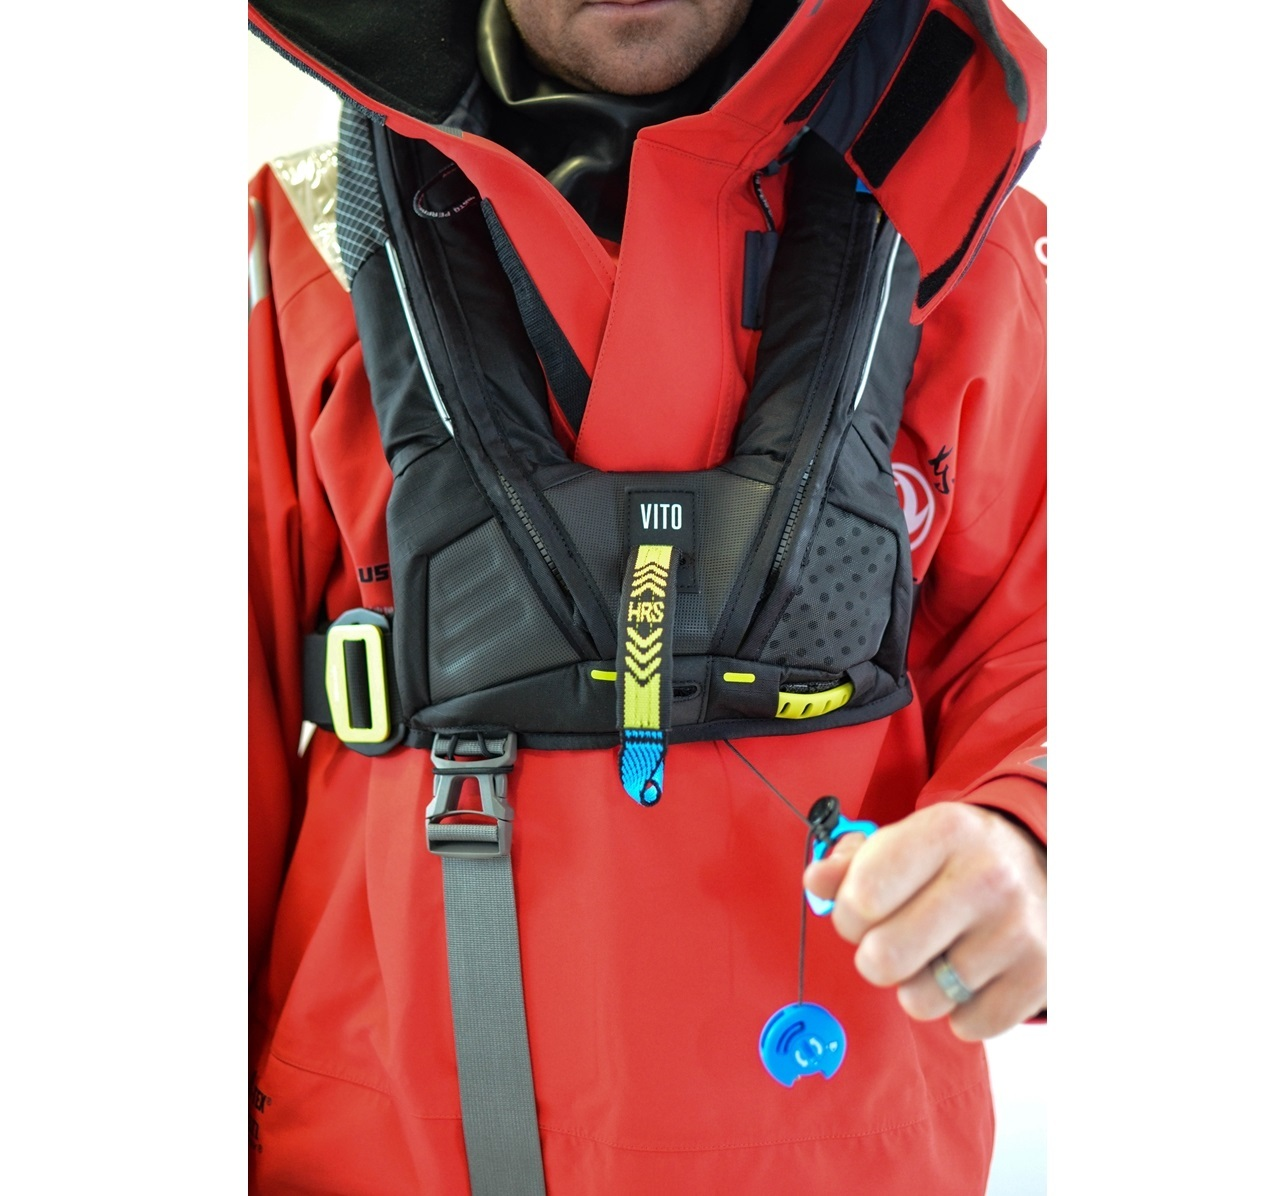 Deckvest Vito offshore inflatable lifejacket